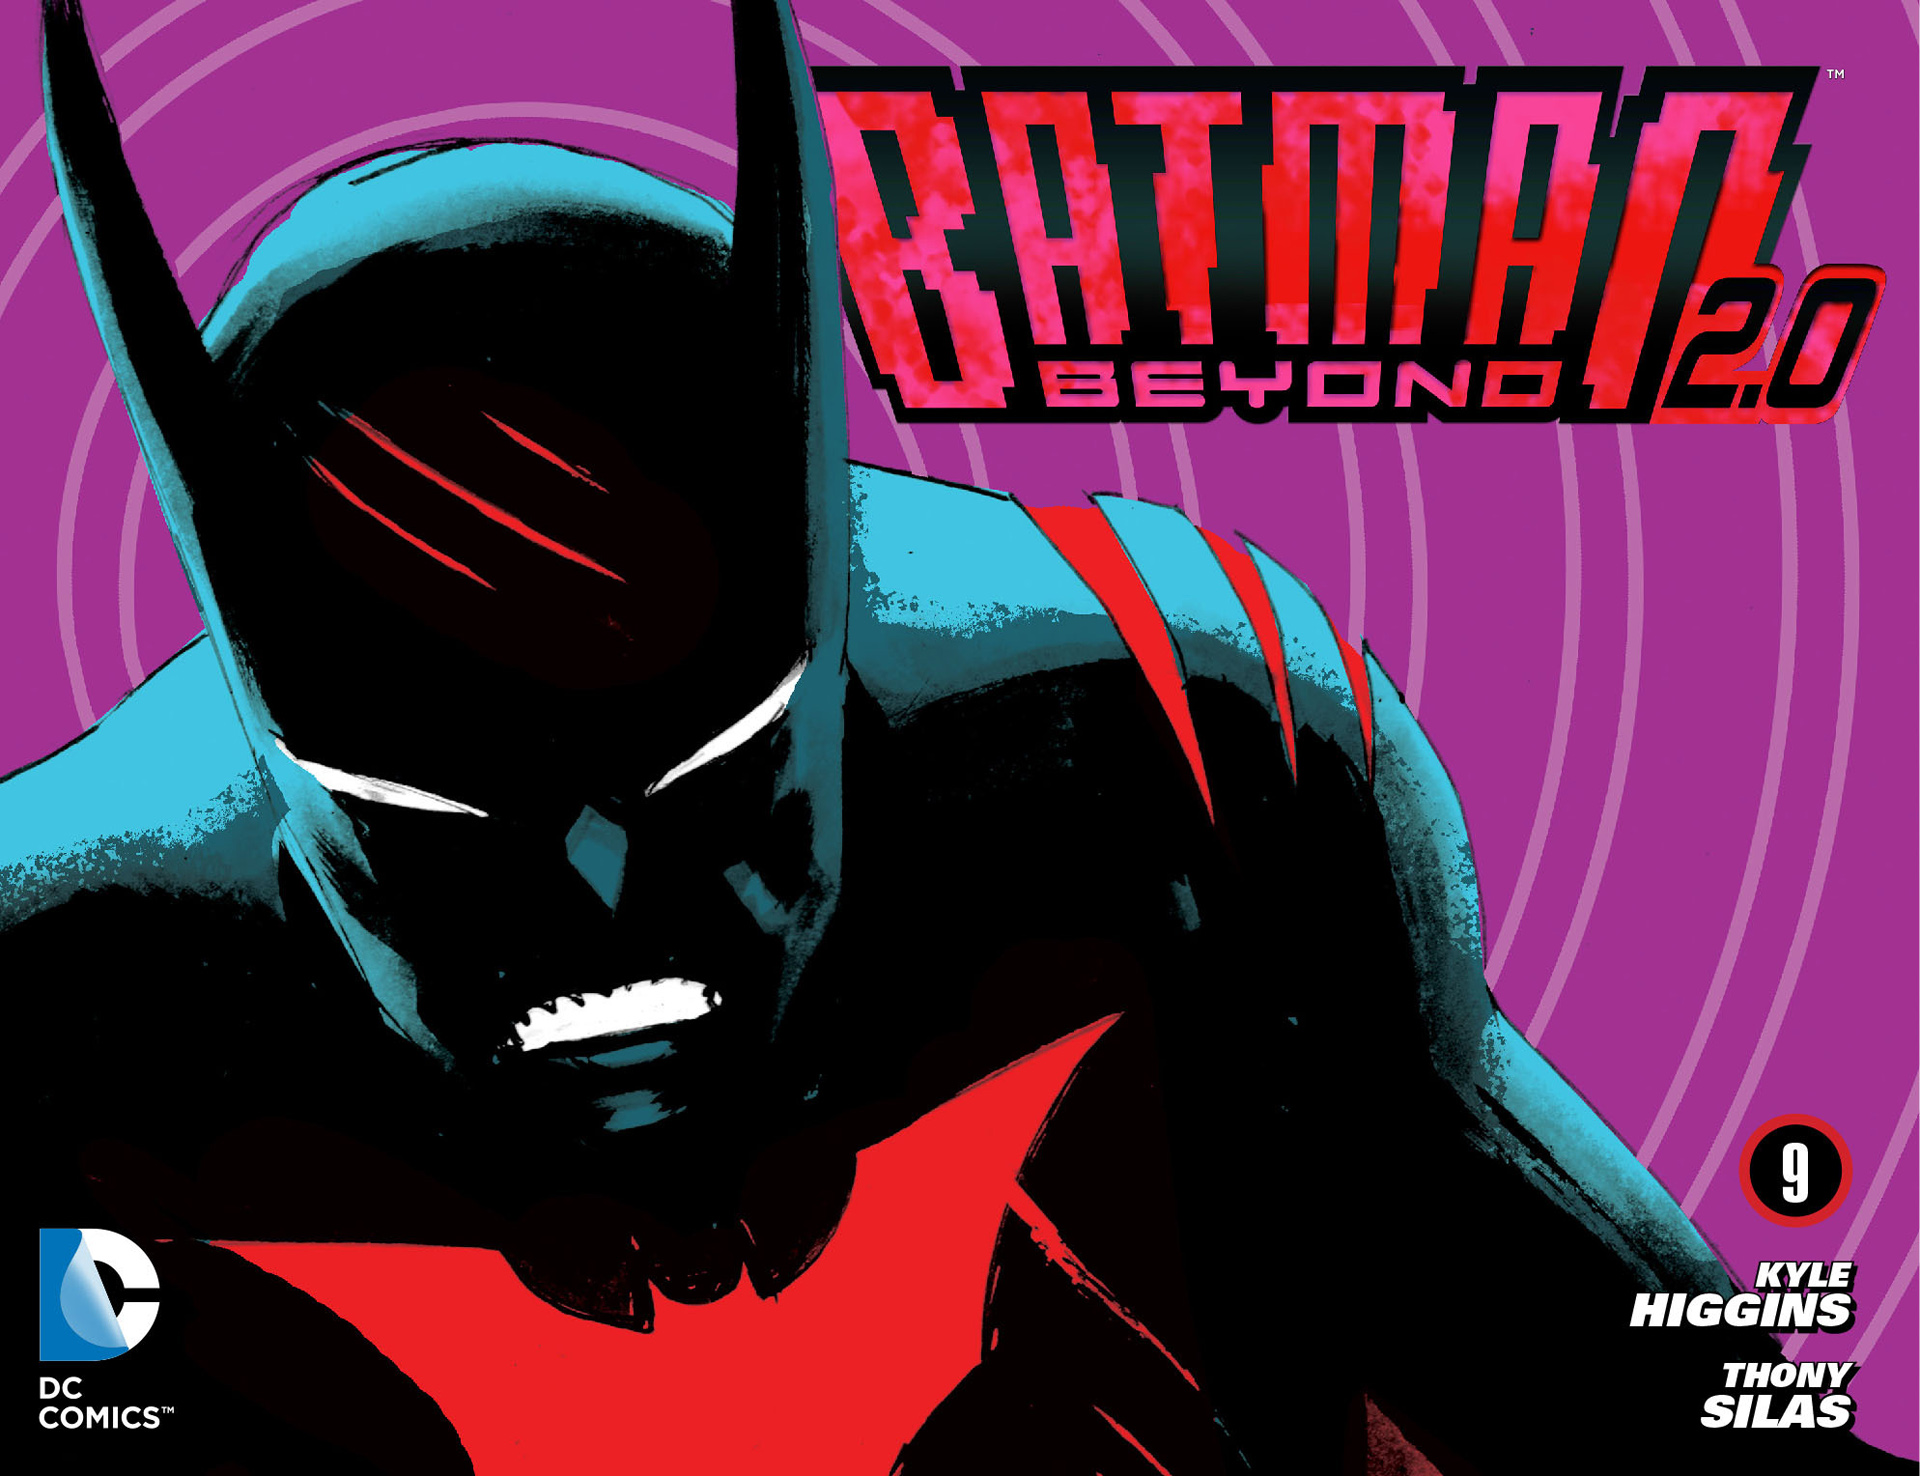 Batman Beyond 2.0 Issue #9 #9 - English 1